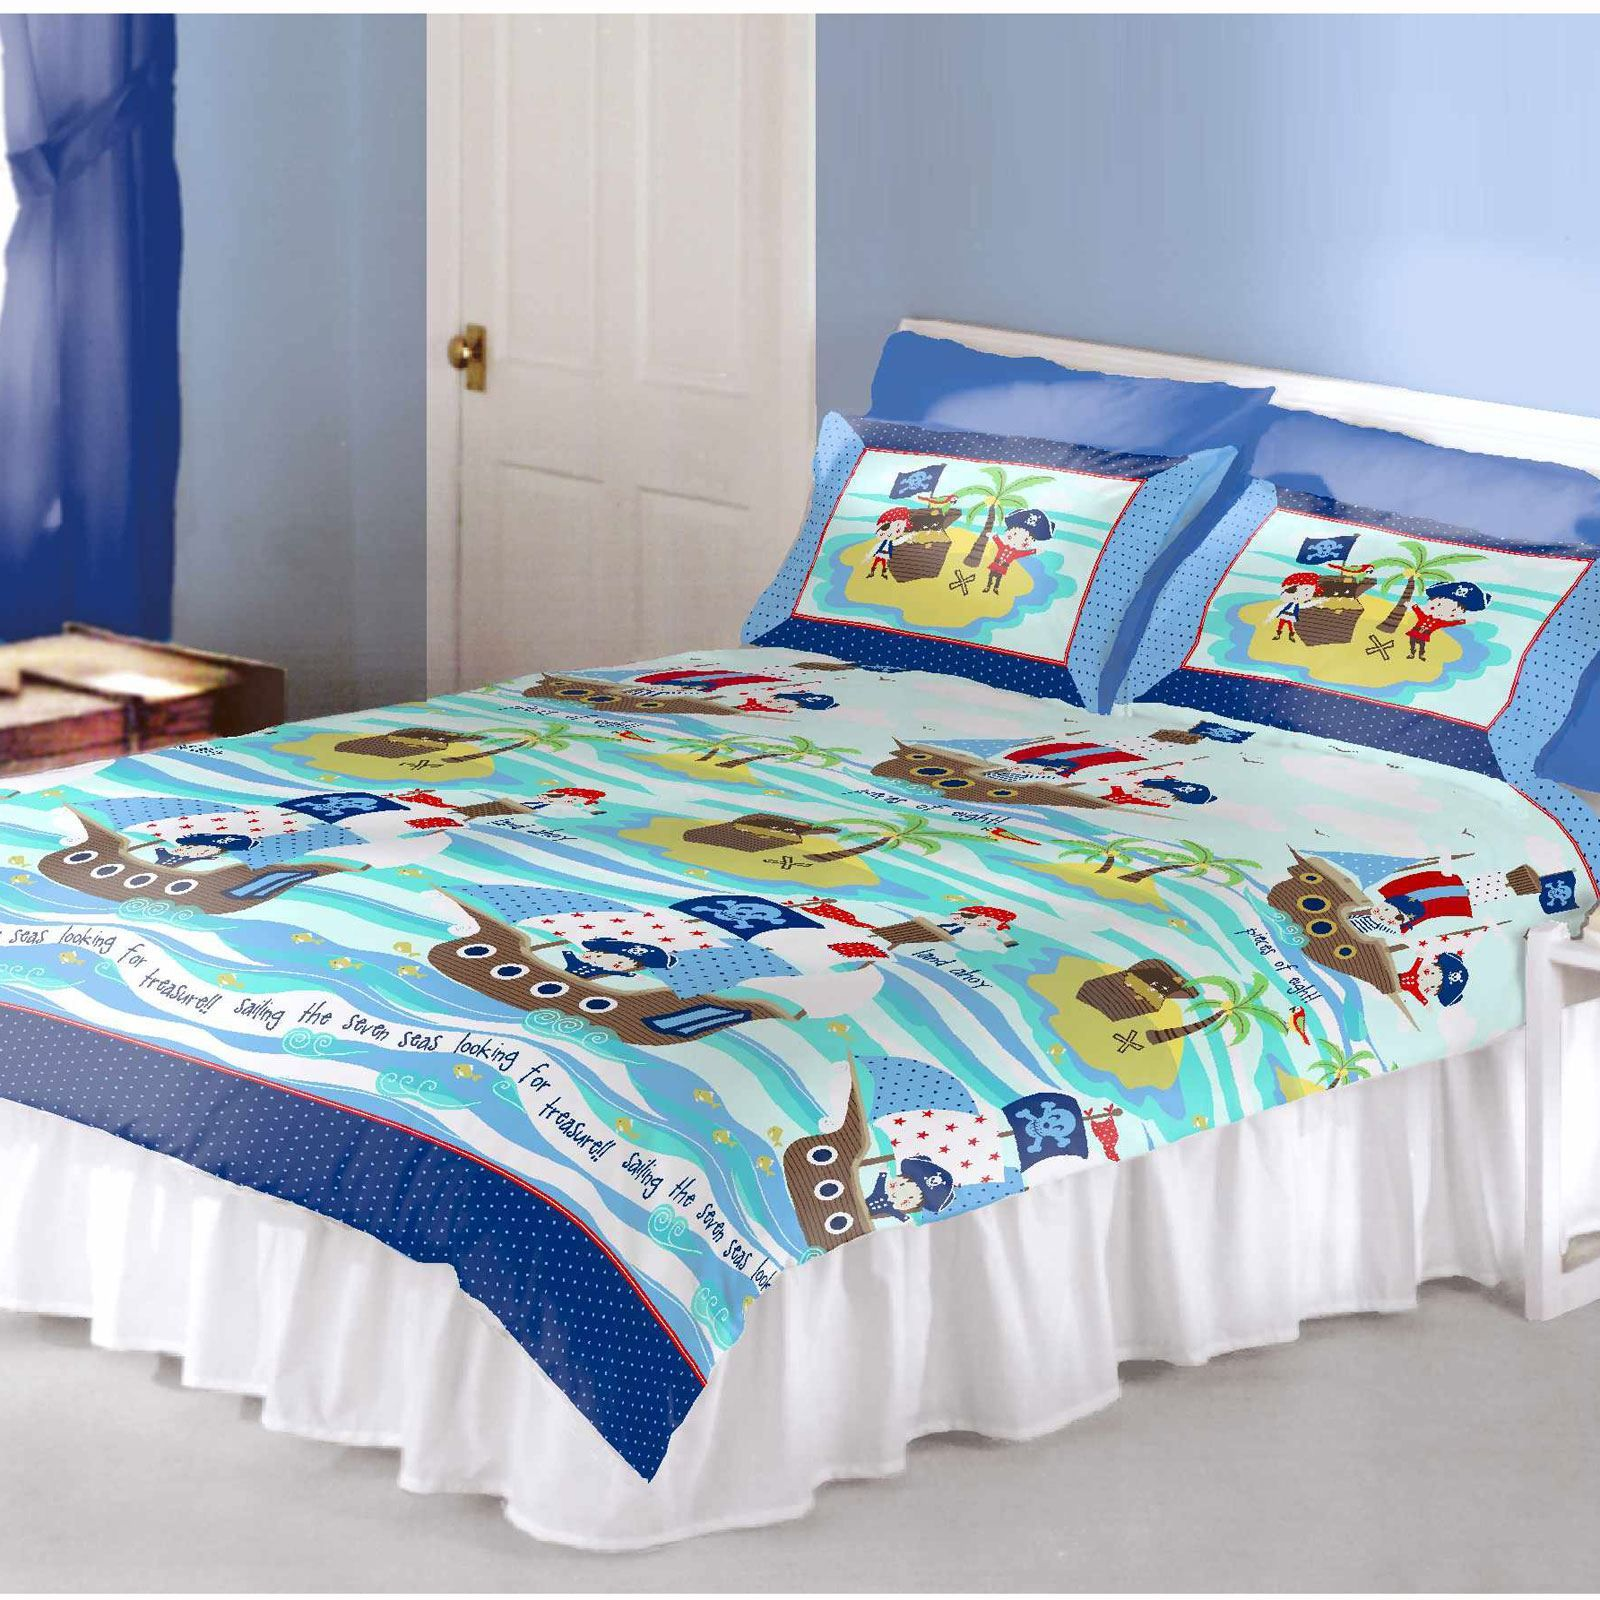 SEVEN SEAS PIRATES BEDDING BEDROOM ACCESSORIES DUVET COVERS